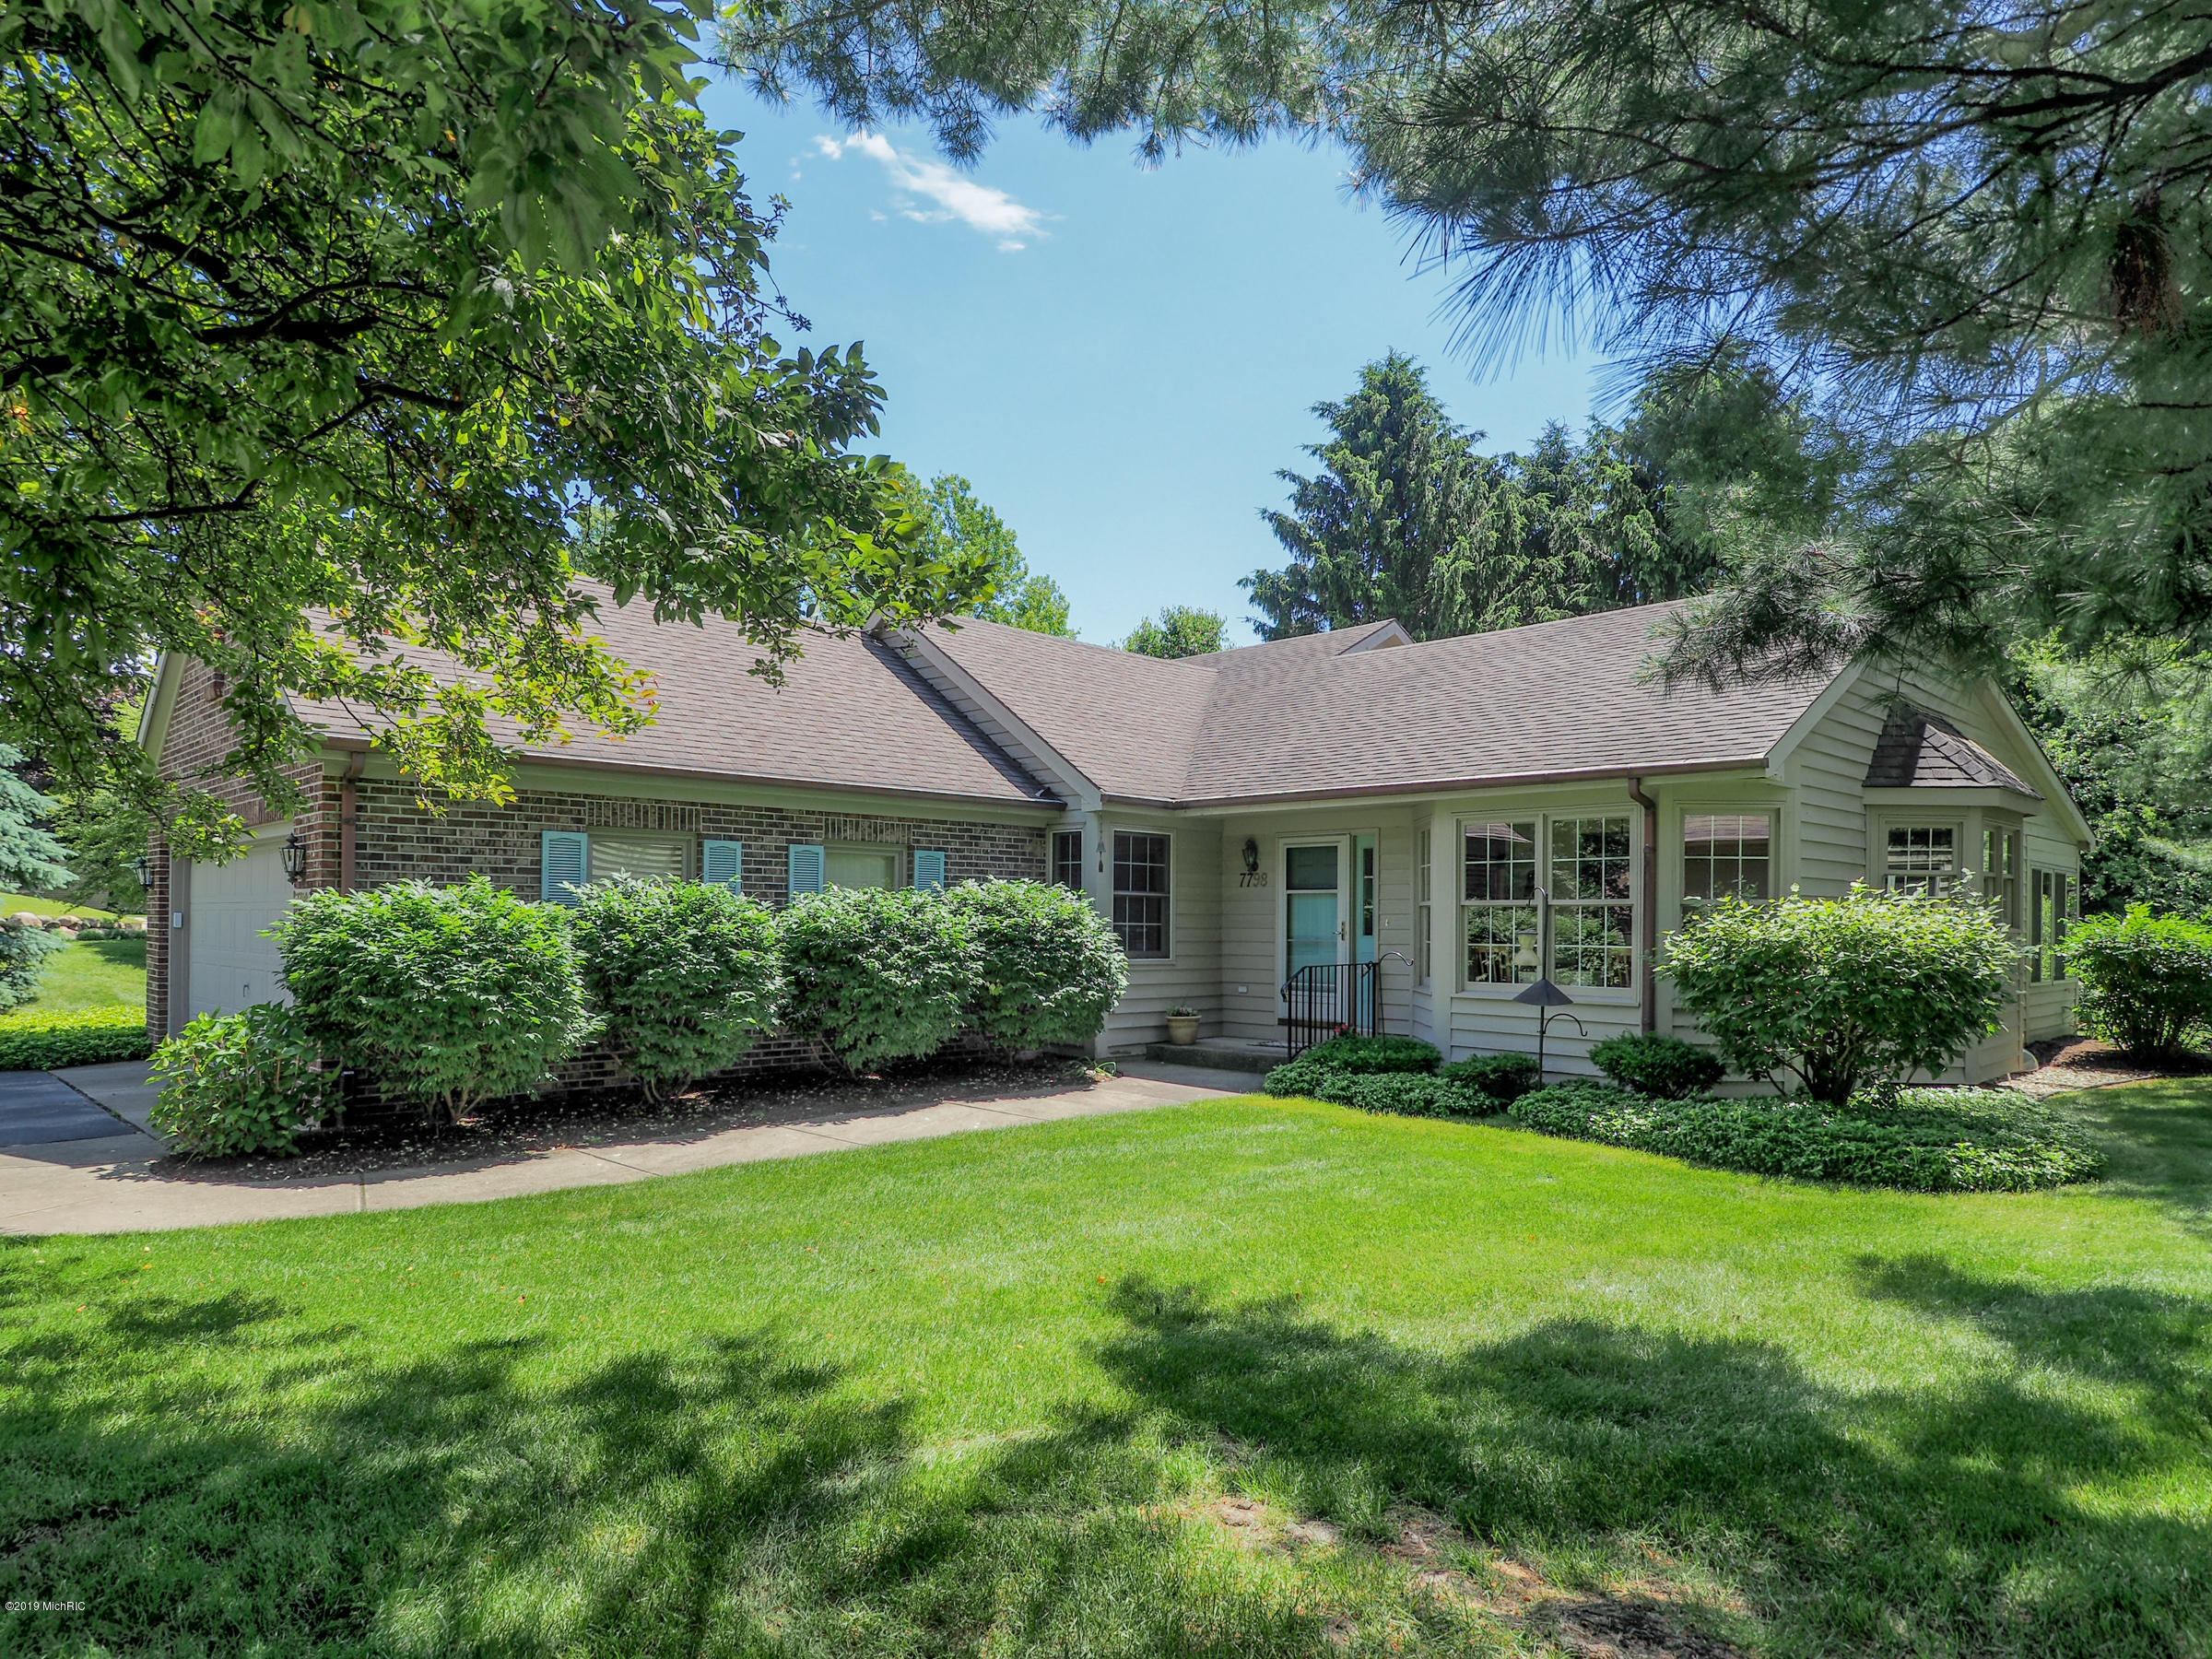 7798 St Andrews Circle, Portage, Michigan 49024, 2 Bedrooms Bedrooms, ,2 BathroomsBathrooms,Residential,For Sale,St Andrews,19027206